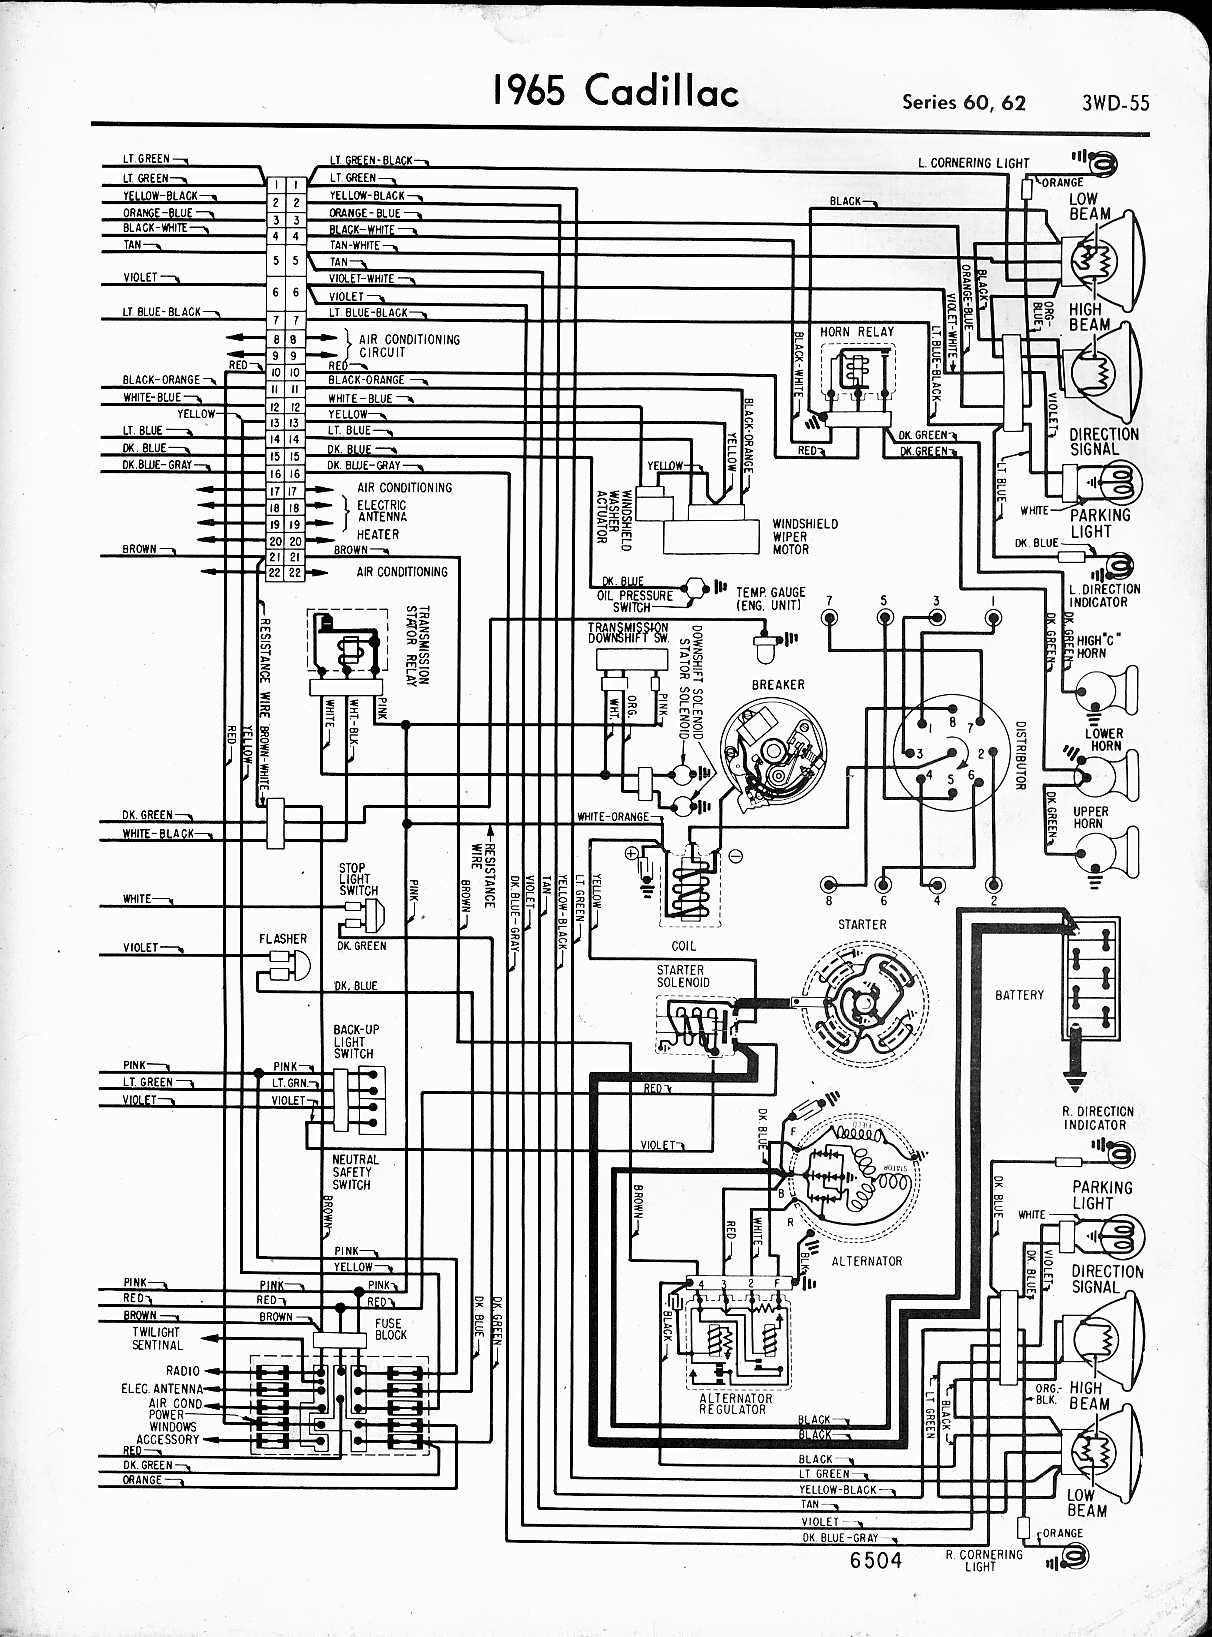 cheapskate8217s headset adapter electrical wiring diagram symbols1963 cadillac wiring diagram besides 1965 cadillac wiring diagram1965 cadillac power window motor 7 13 gvapor